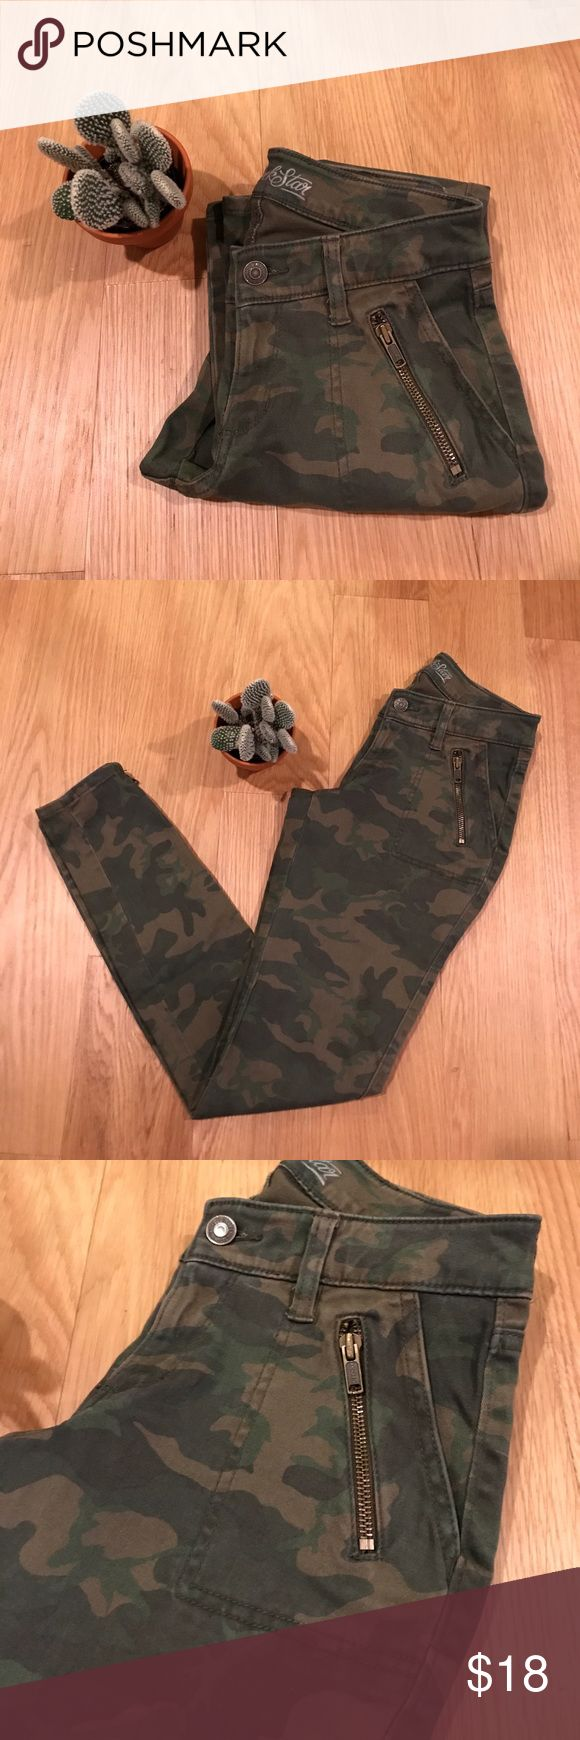 Old Navy Rockstar Camo Skinny Jeans Old Navy camo skinnies.  Rockstar fit (low rise). Zipper details on pockets and ankles.  Worn one time.  In perfect condition.  No signs of wear. Old Navy Jeans Skinny